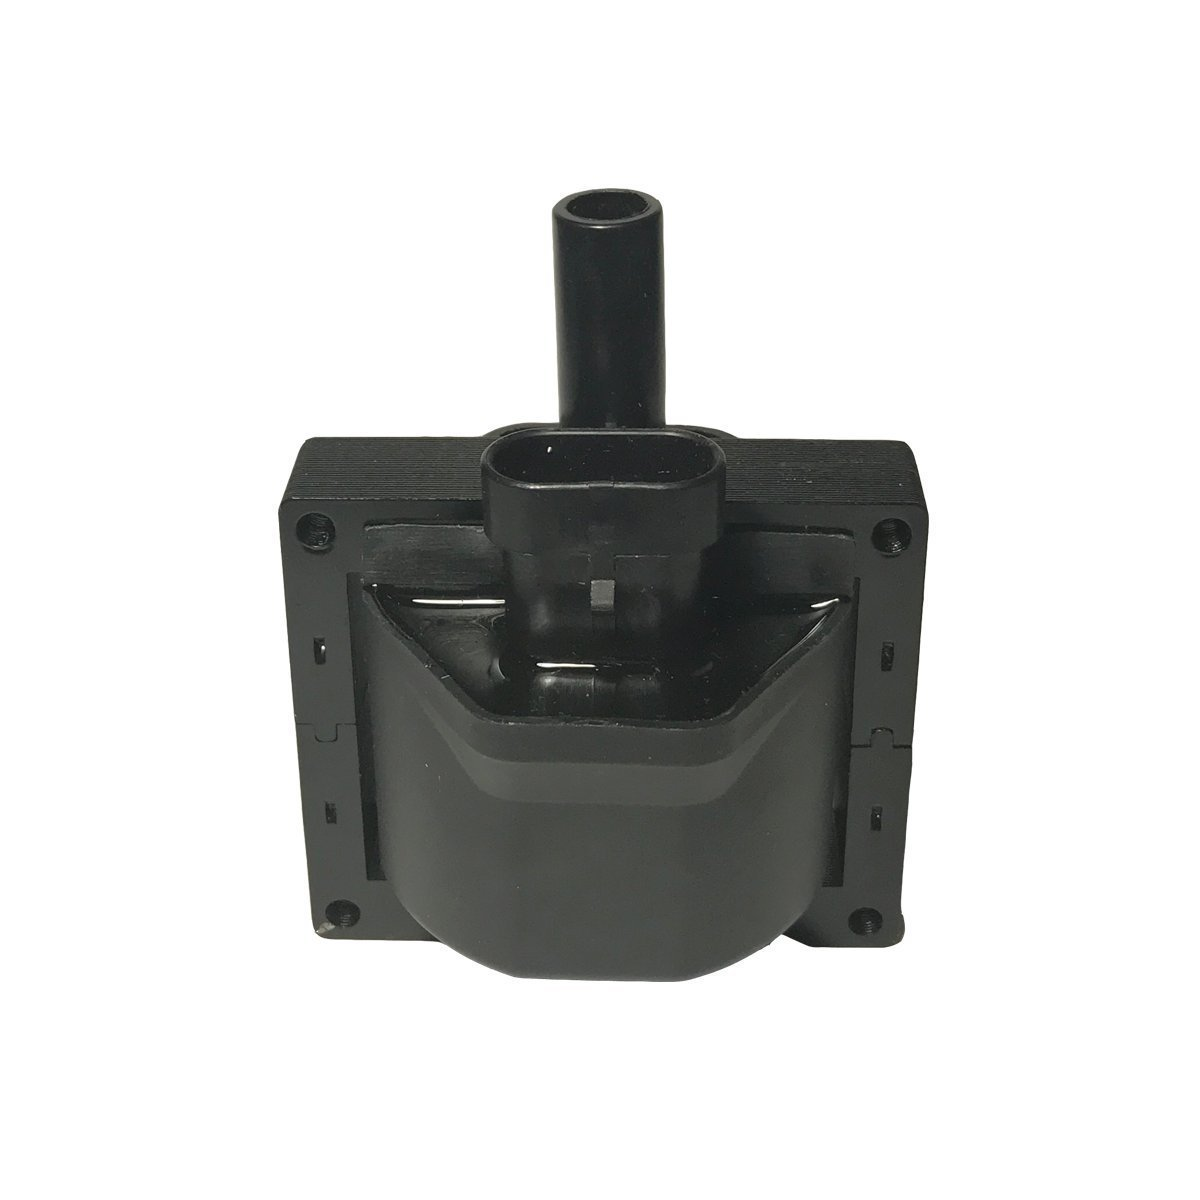 Ignition Coil - Replaces GM #10489421 & ACDelco # D577 - Fits Chevrolet, GMC, Cadillac V6 & V8 - Ignition Coil for 2000 Chevy Silverado and more